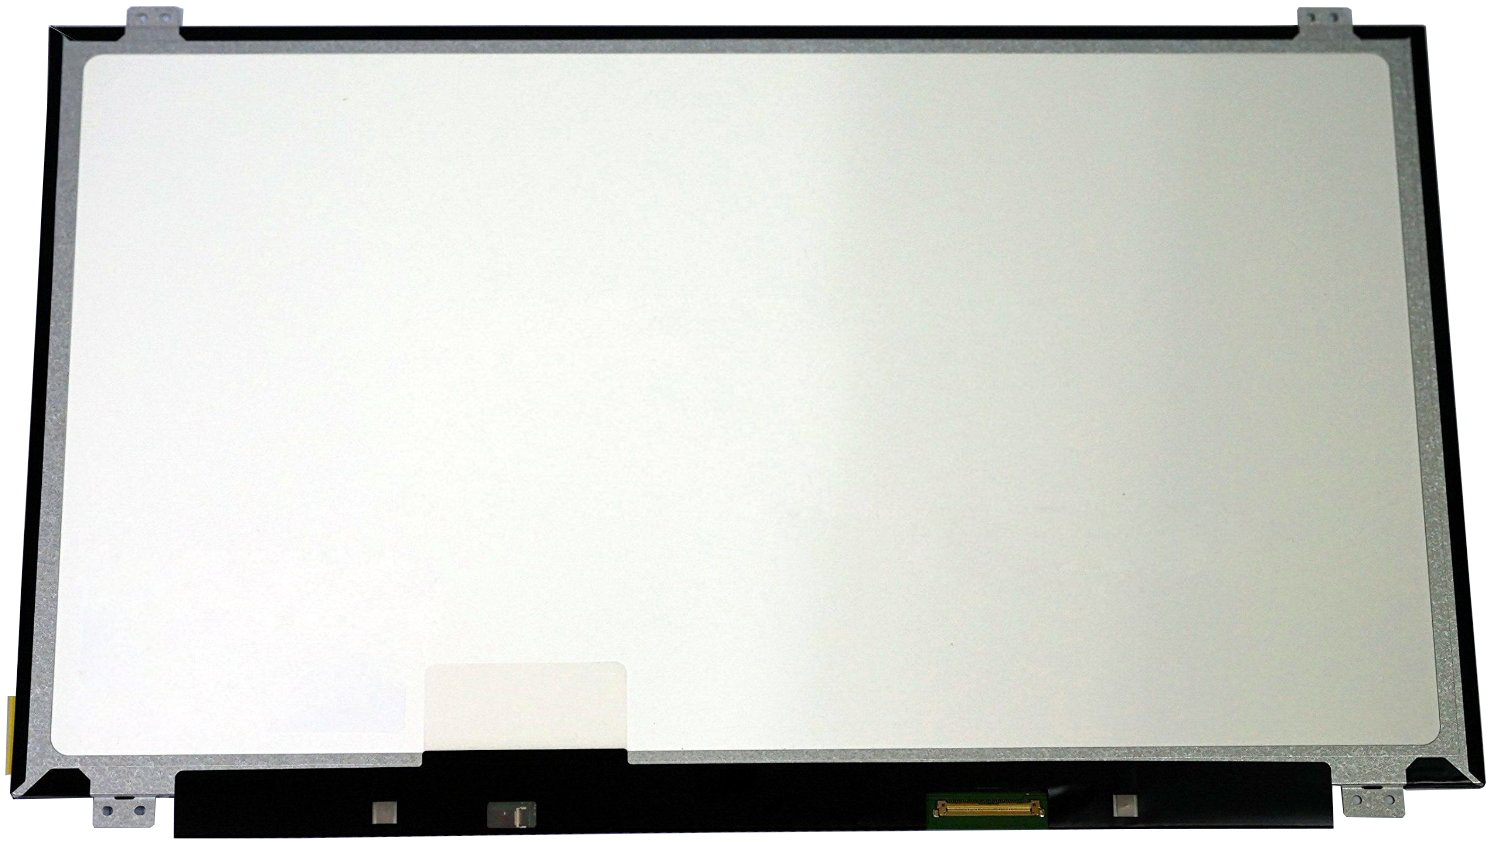 QuYing Laptop LCD Screen for Acer Aspire V5-551G V5-551 V5-531G V5-531 V5-571 V5-571G ZR7 PEW71 (15.6 inch 1366x768 40pin N) russian keyboard for acer aspire v5 v5 531 v5 531g v5 551 v5 551g v5 571 v5 571g v5 571p v5 571pg v5 531p backlit ru black